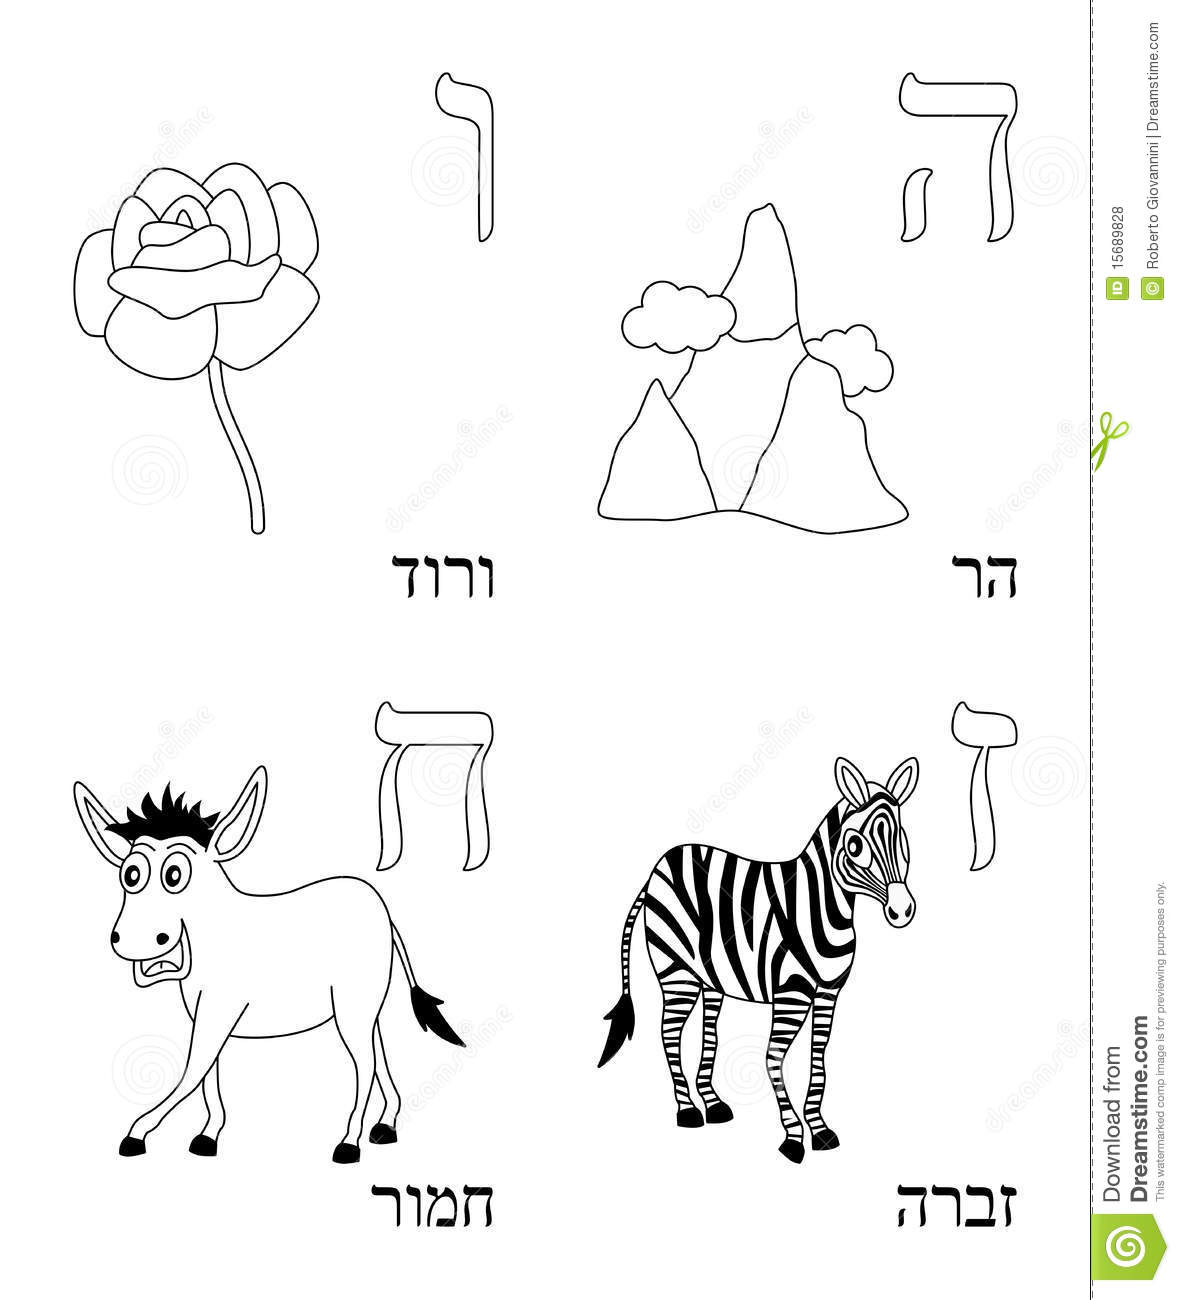 Coloring Hebrew Alphabet 2 Royalty Free Stock Photos